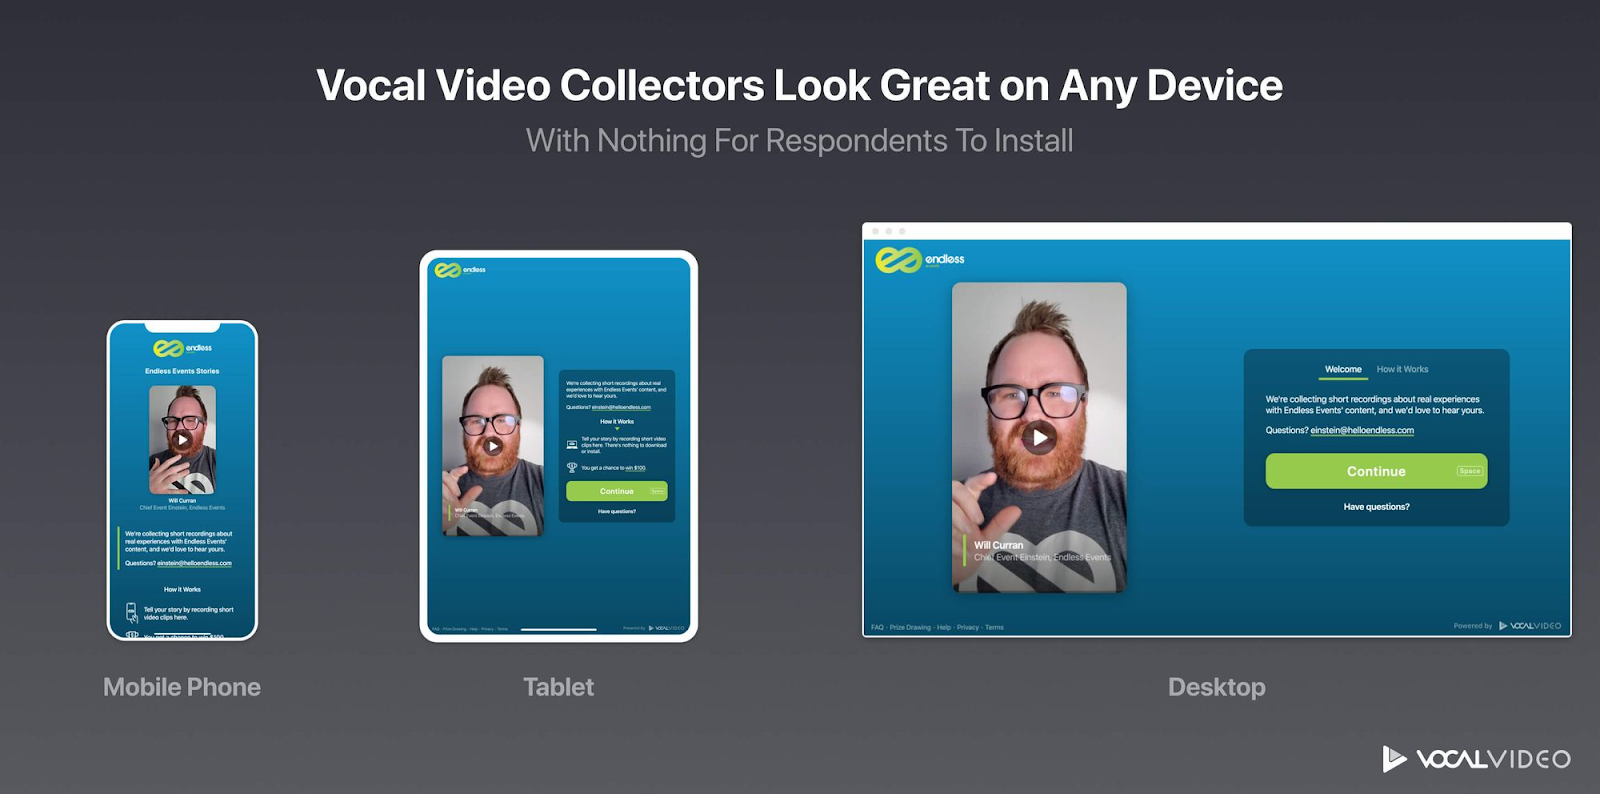 Vocal Video Collectors Look Great on Any Device: Mobile phone, tablet, or desktop.